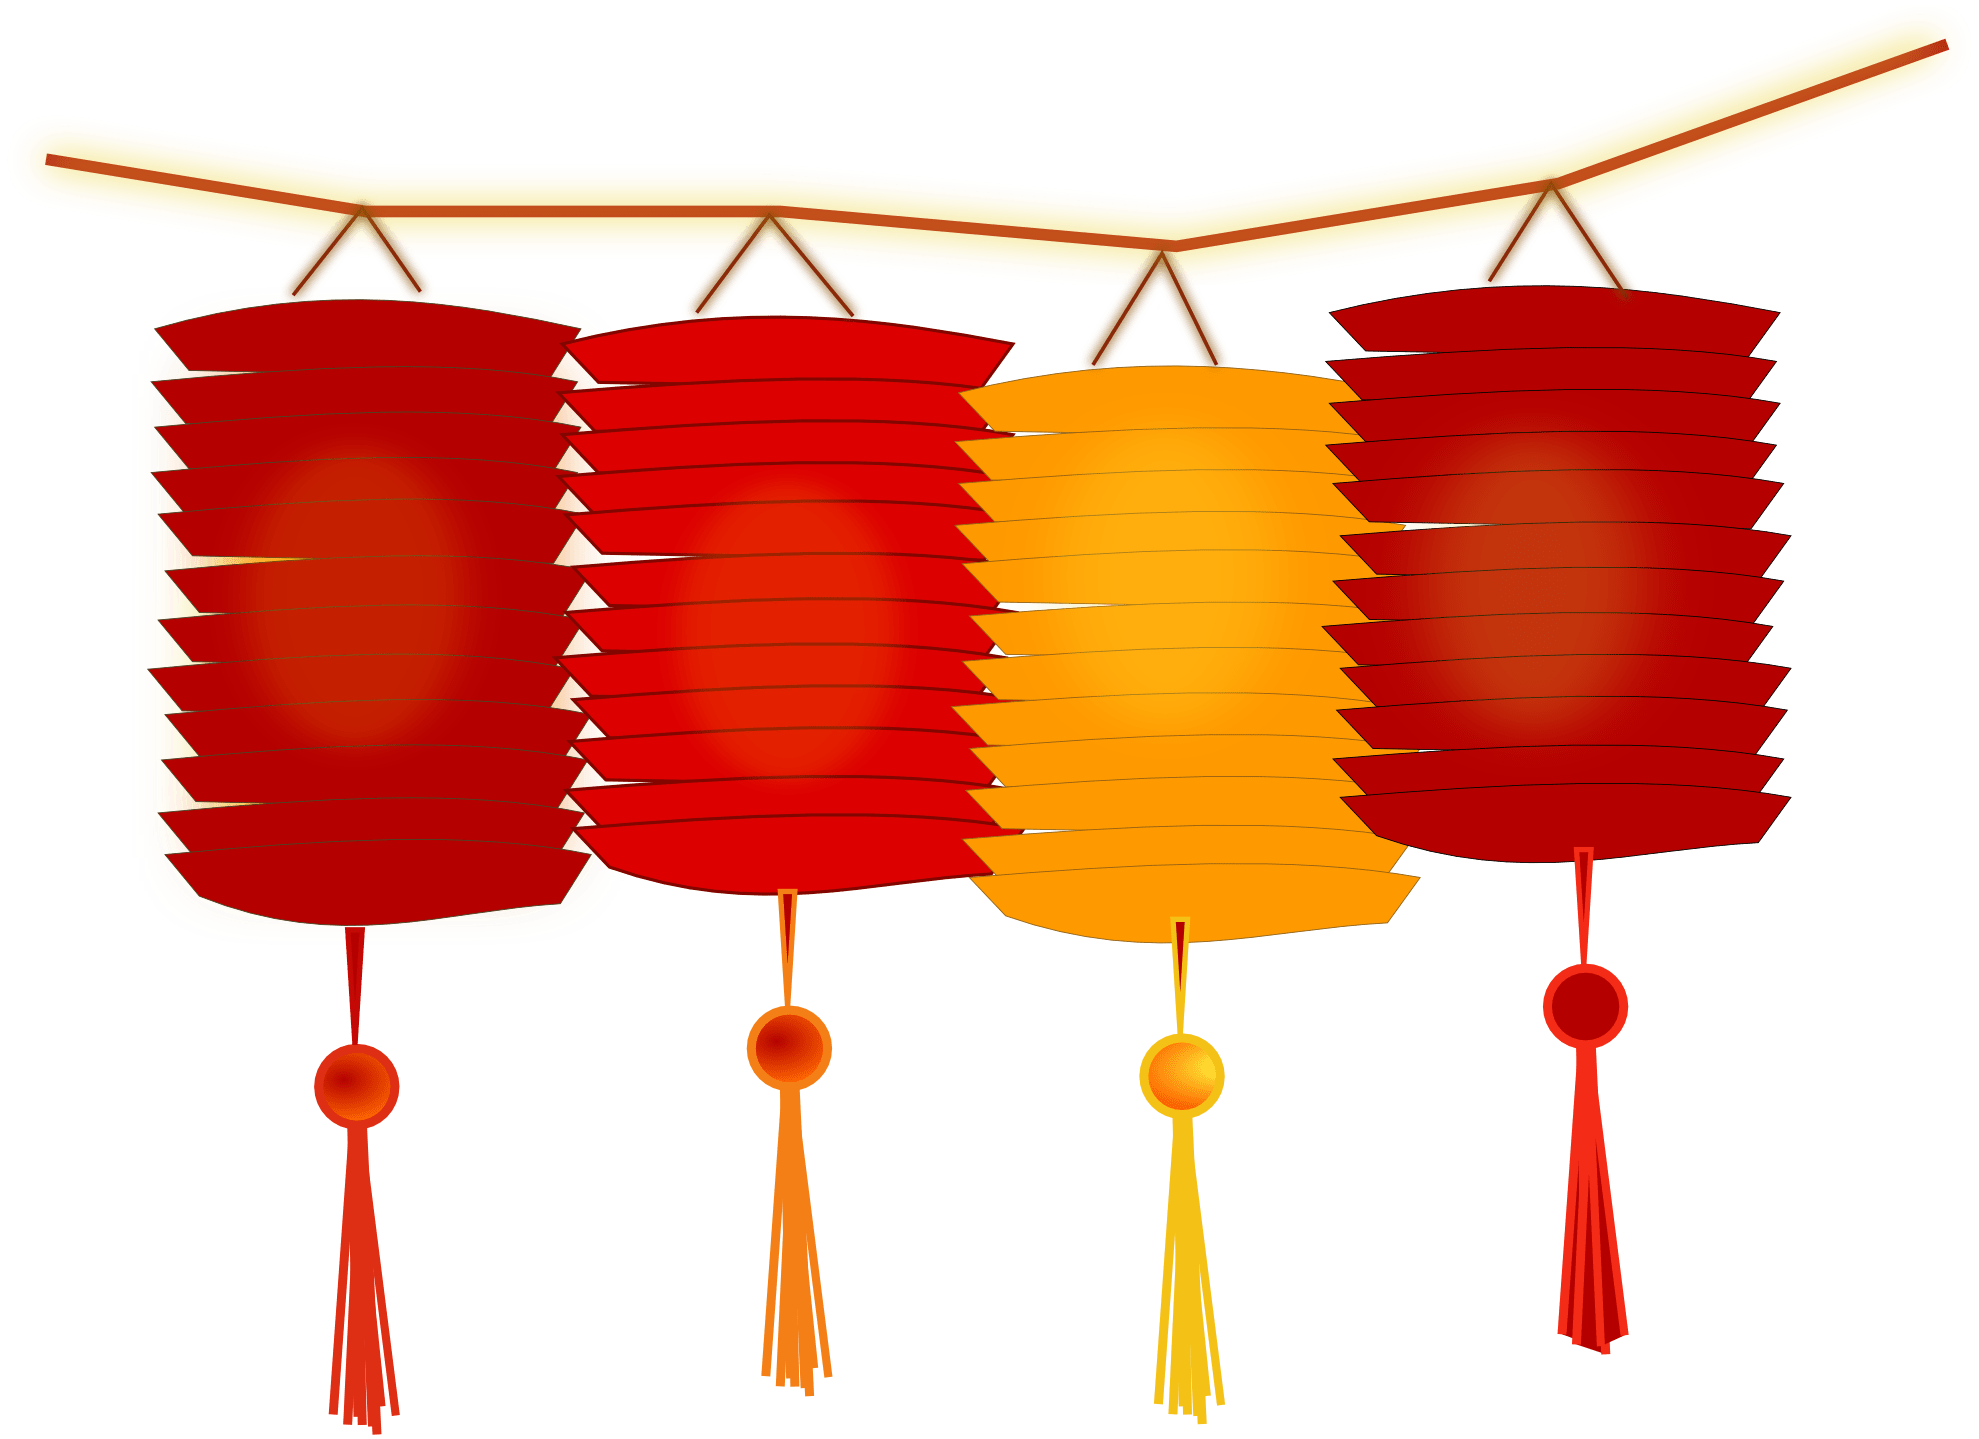 chinese new year fireworks clipart 2 clipart station rh clipartstation com chinese new year 2017 clipart free chinese new year 2017 clipart free